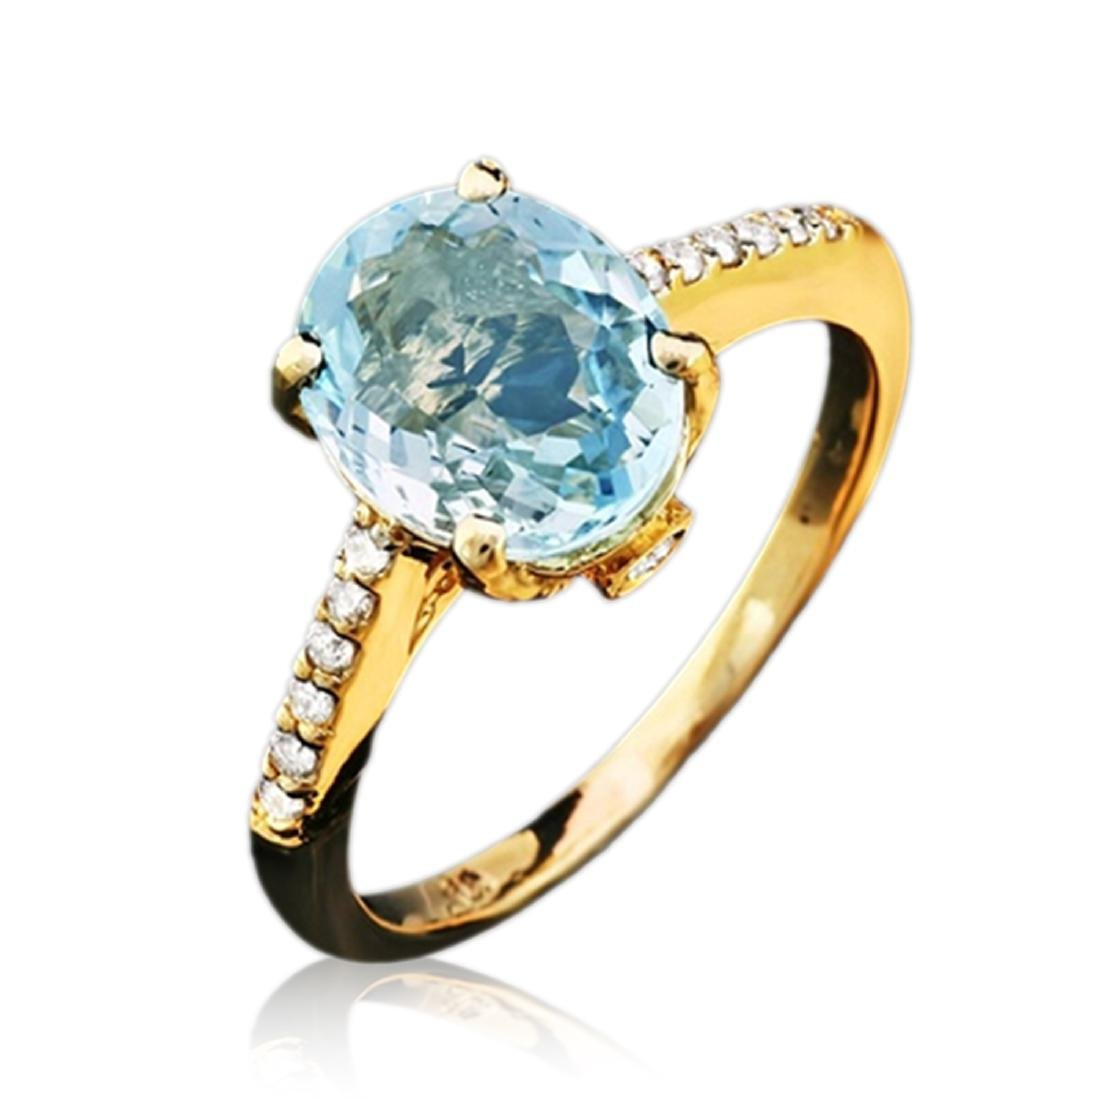 2.70 Carat Natural Aquamarine 18K Solid Yellow Gold